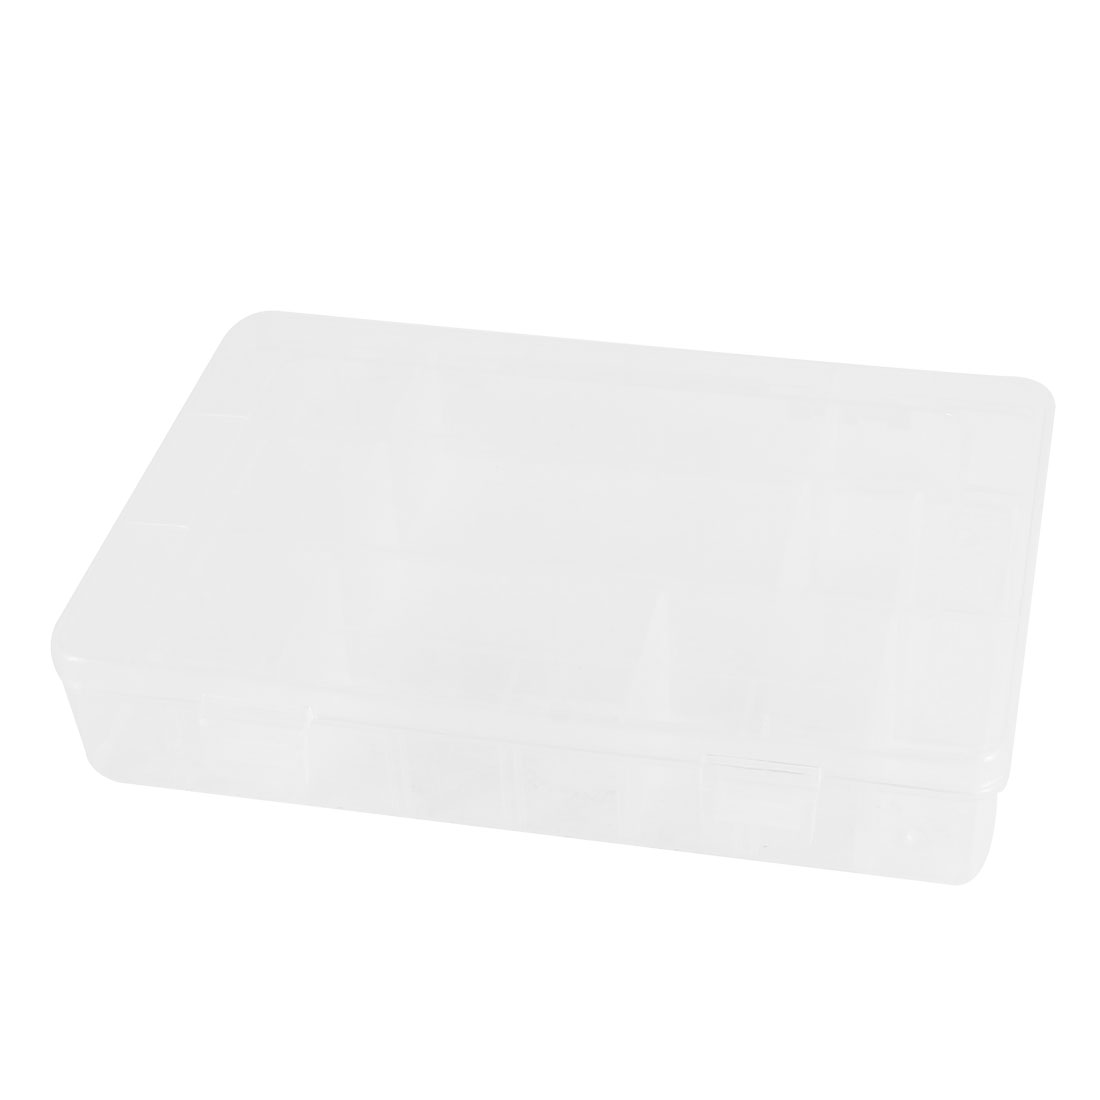 Clear Rectangle Flexible Use Plastic Clip On Components Storage Box Holder